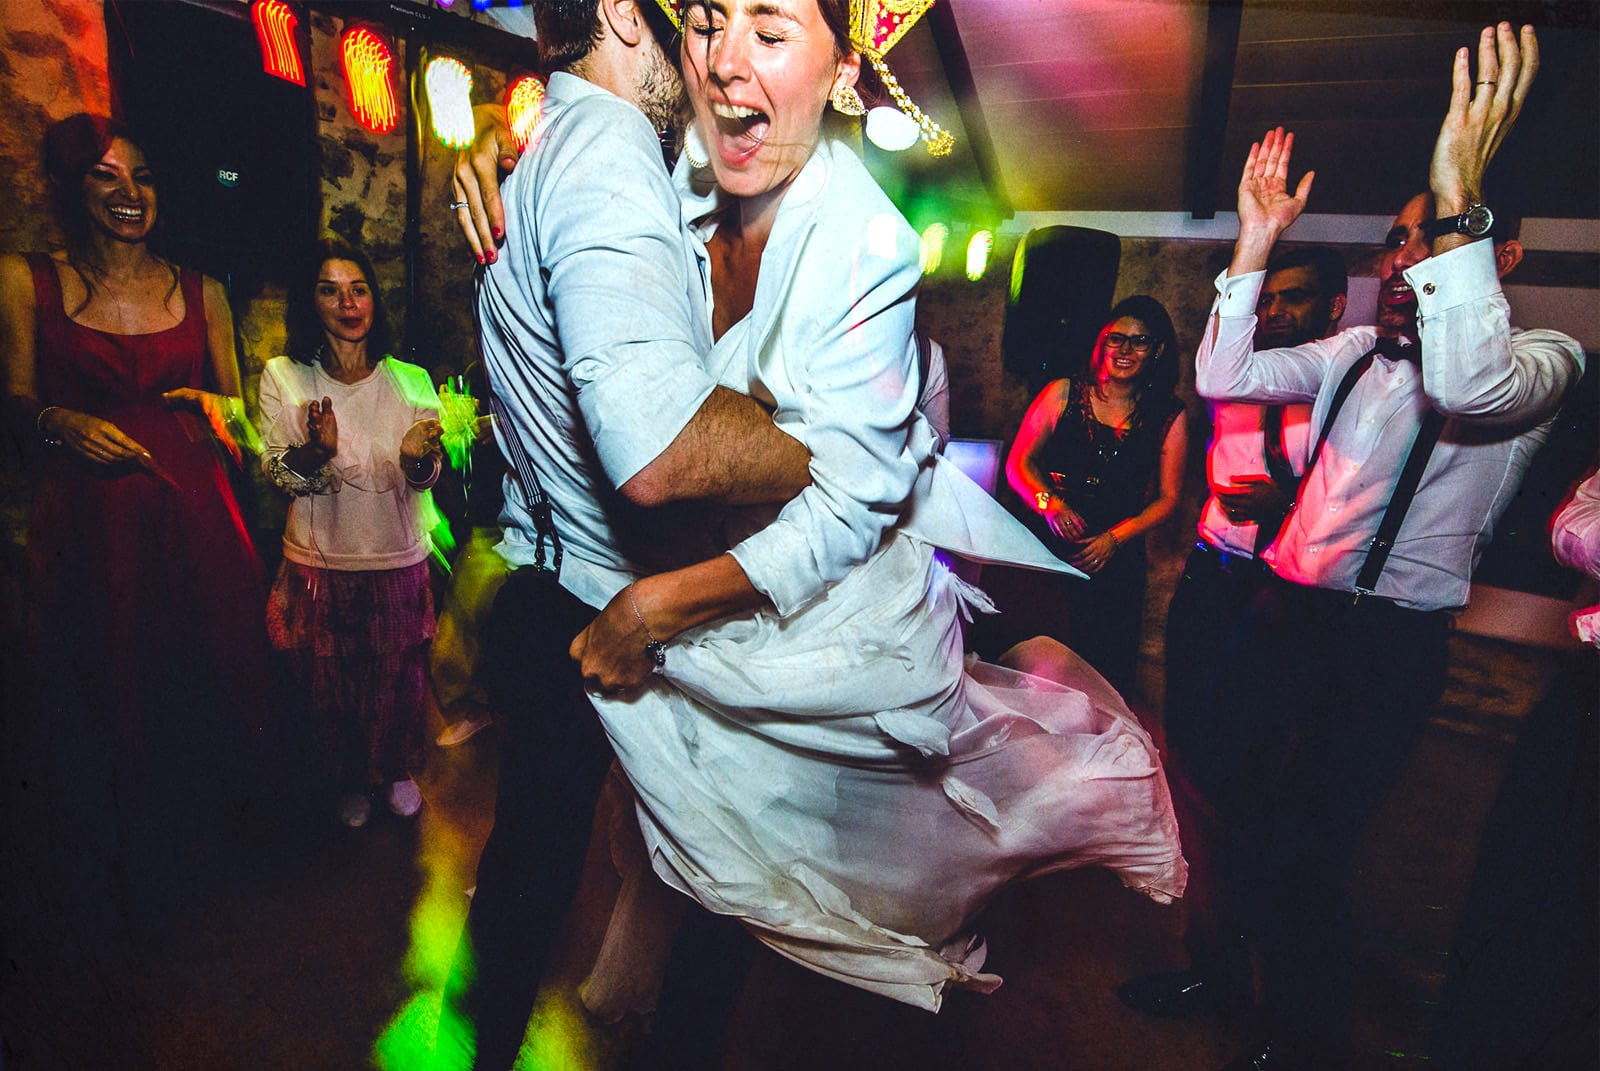 bride screaming while a man spins her on the dance floor